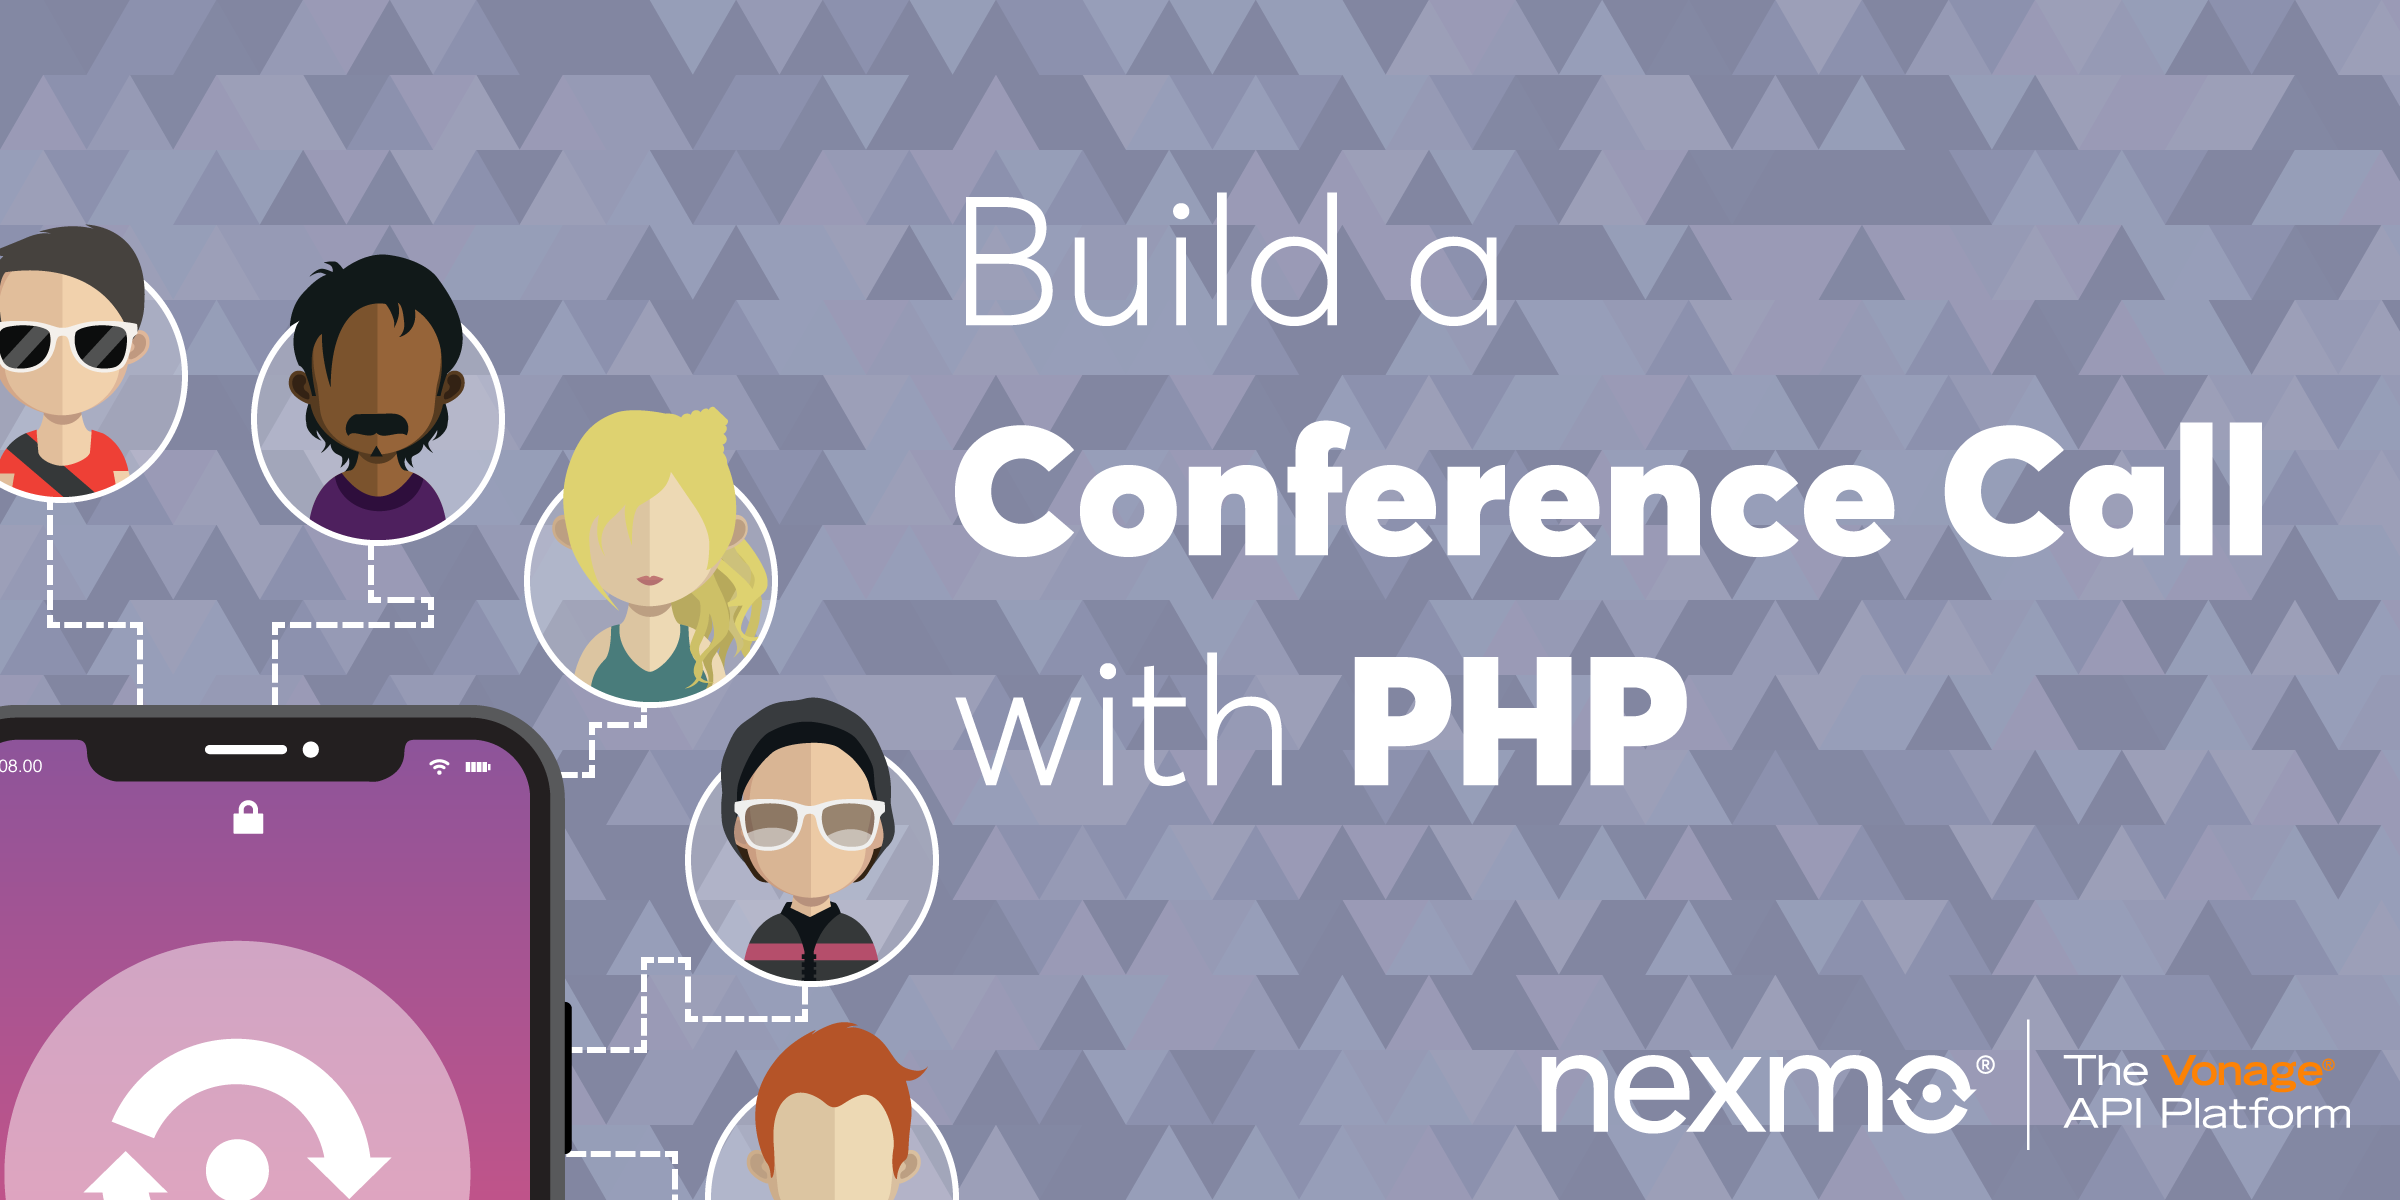 Build a Conference Call with the Nexmo Voice API and PHP